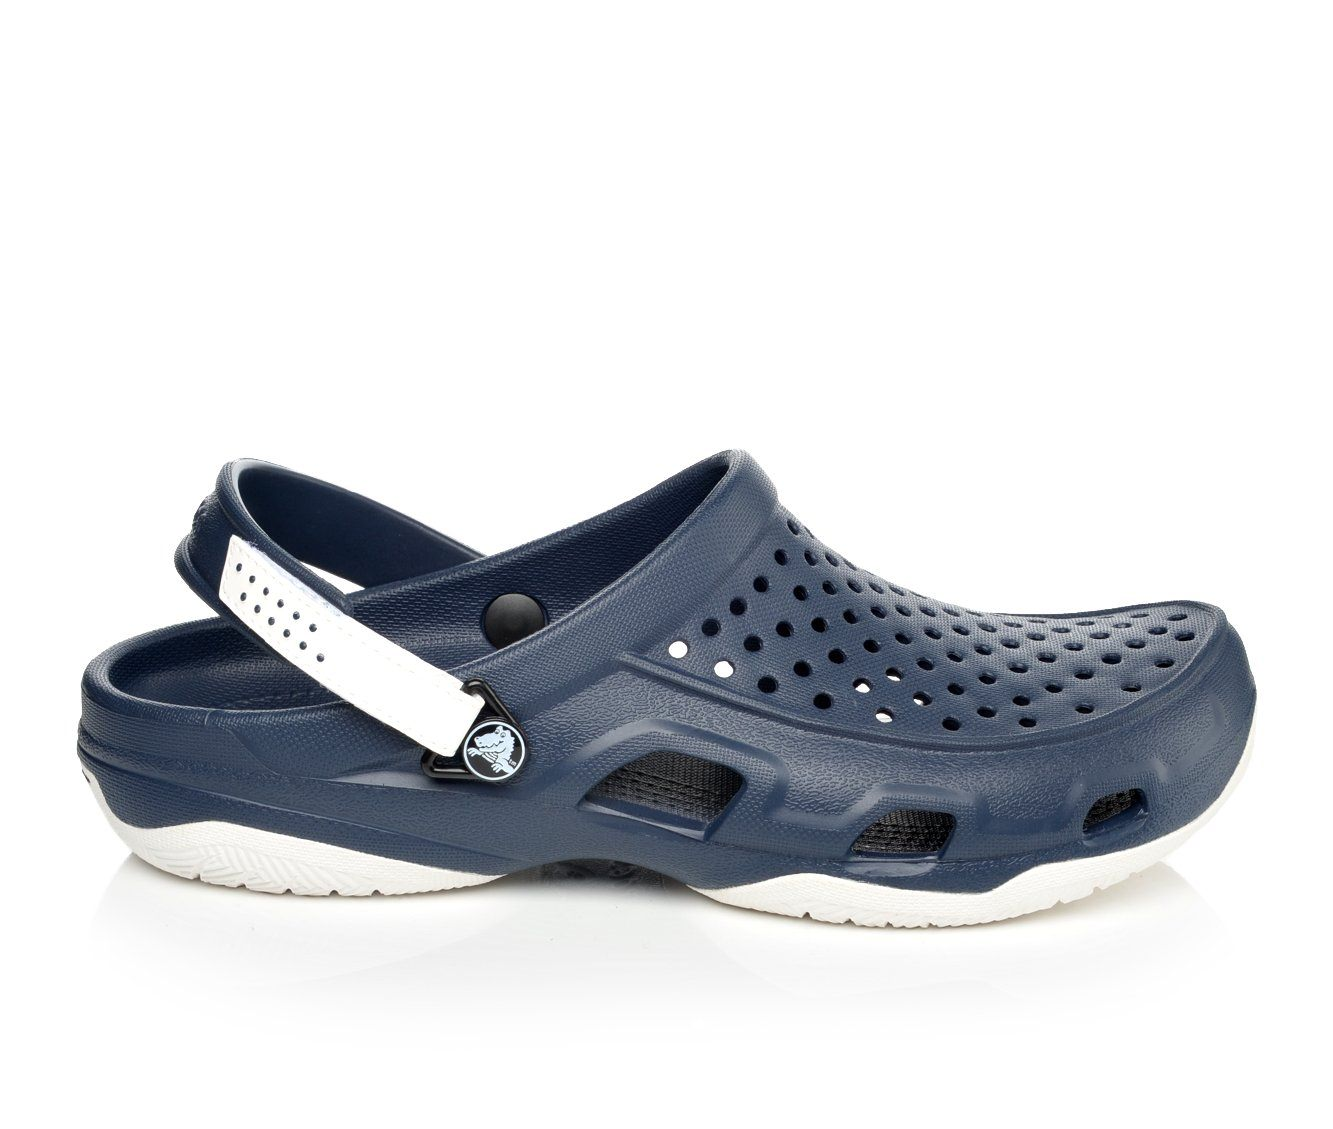 Men's Crocs Swiftwater Deck Clog Sandals (Blue)